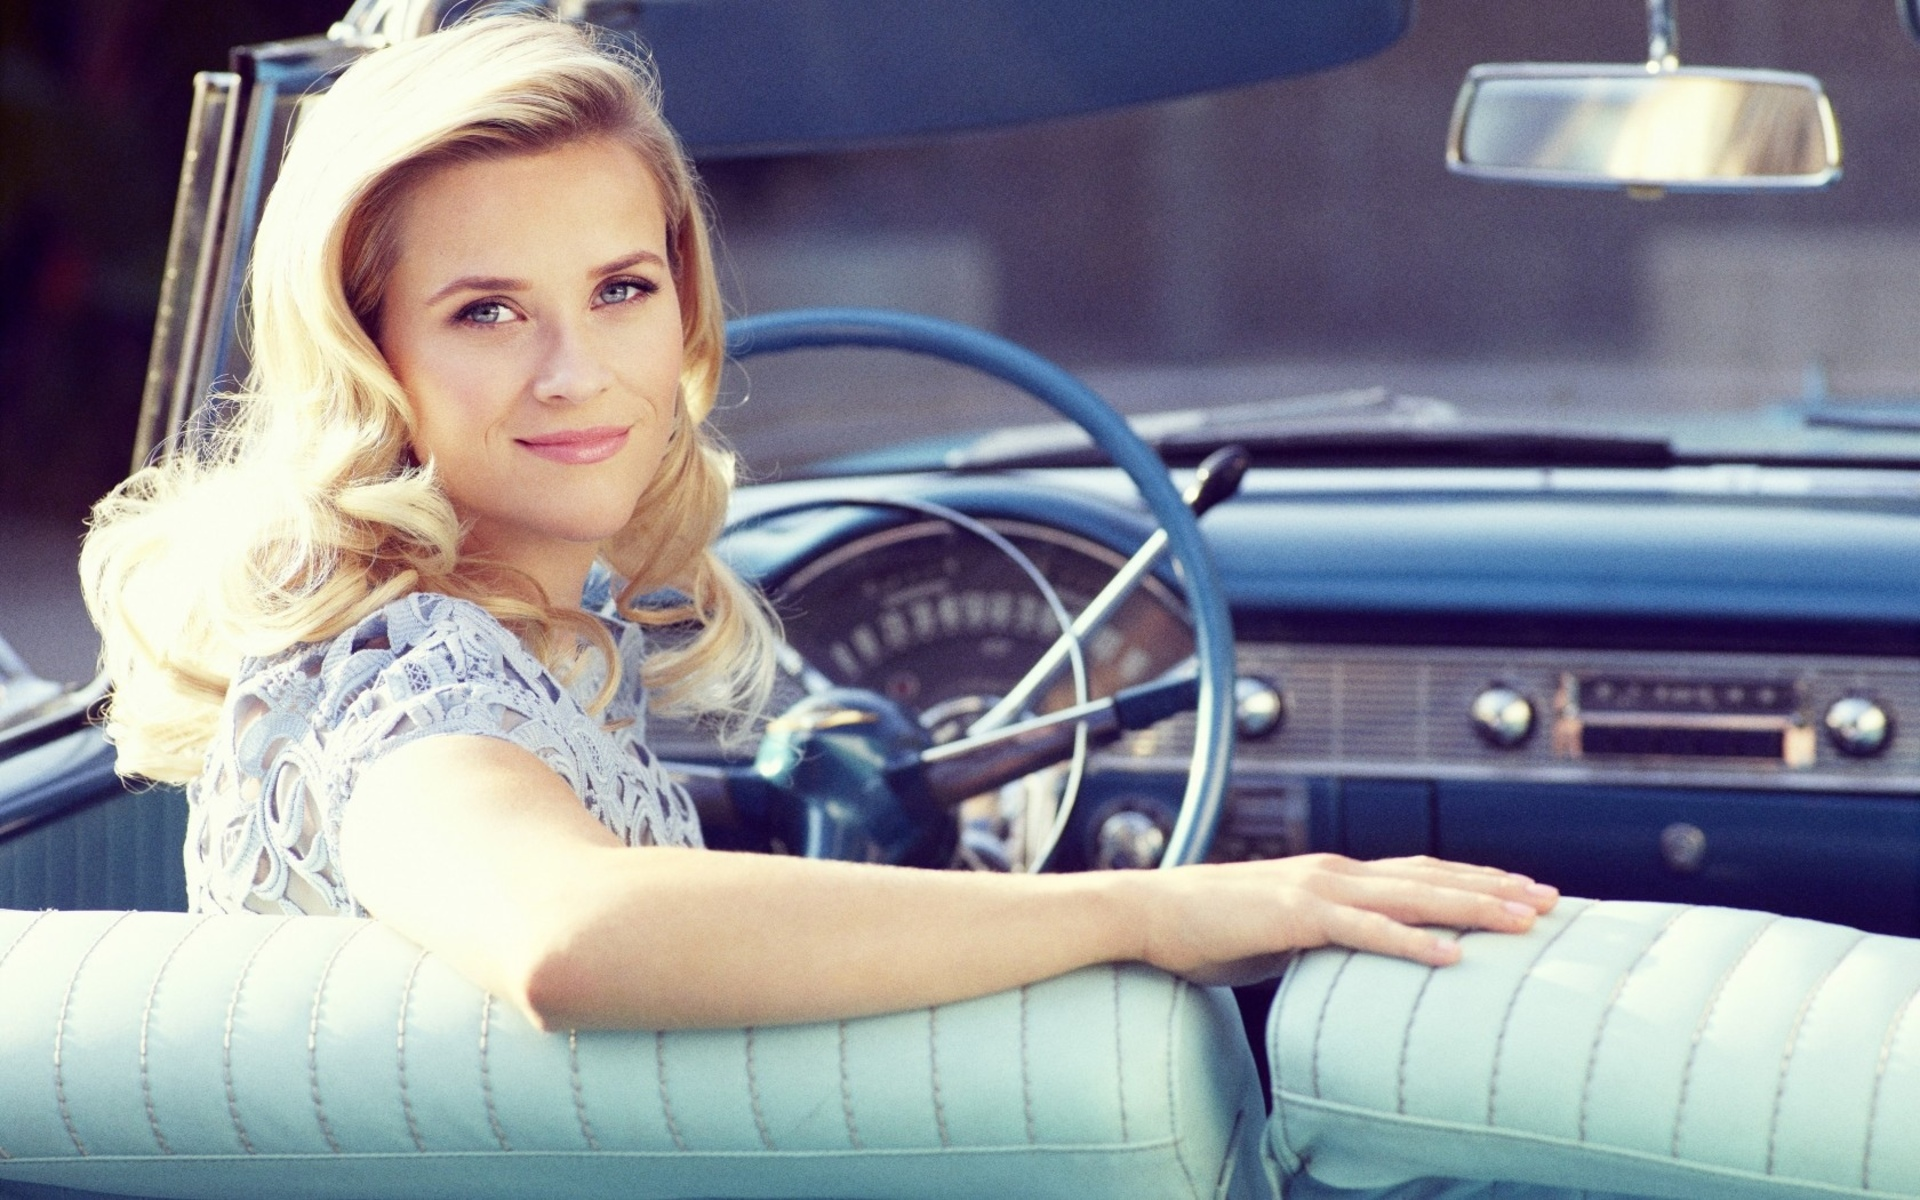 Reese Witherspoon Sexy And Hot Hd Wallpapers - All Hd -5958